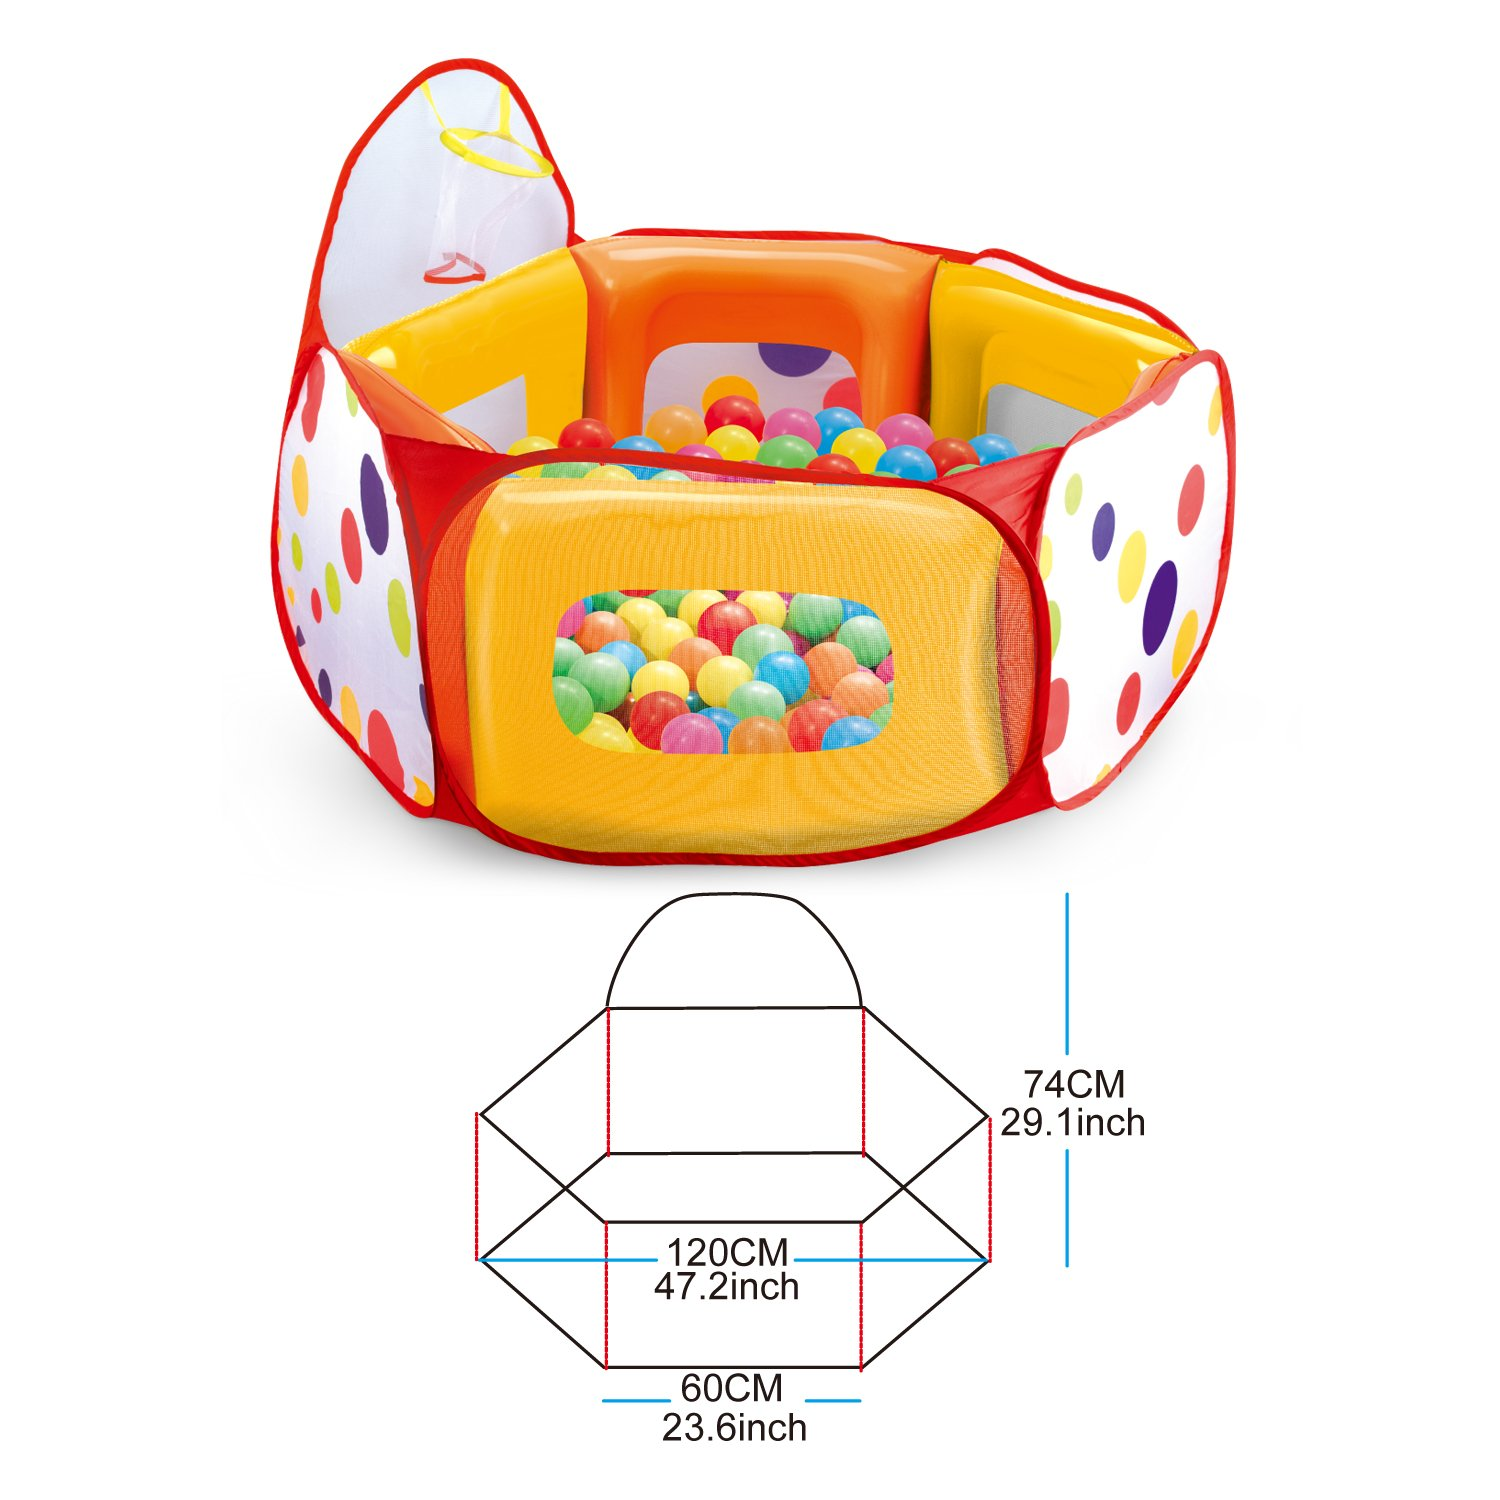 Indoor /& Outdoor Jumping Fun Playhouse Set Super Safe for Kids and Toddlers prextex Kids Ball Pit Play Tent with 100 Colorful Crush-Free Pit Balls